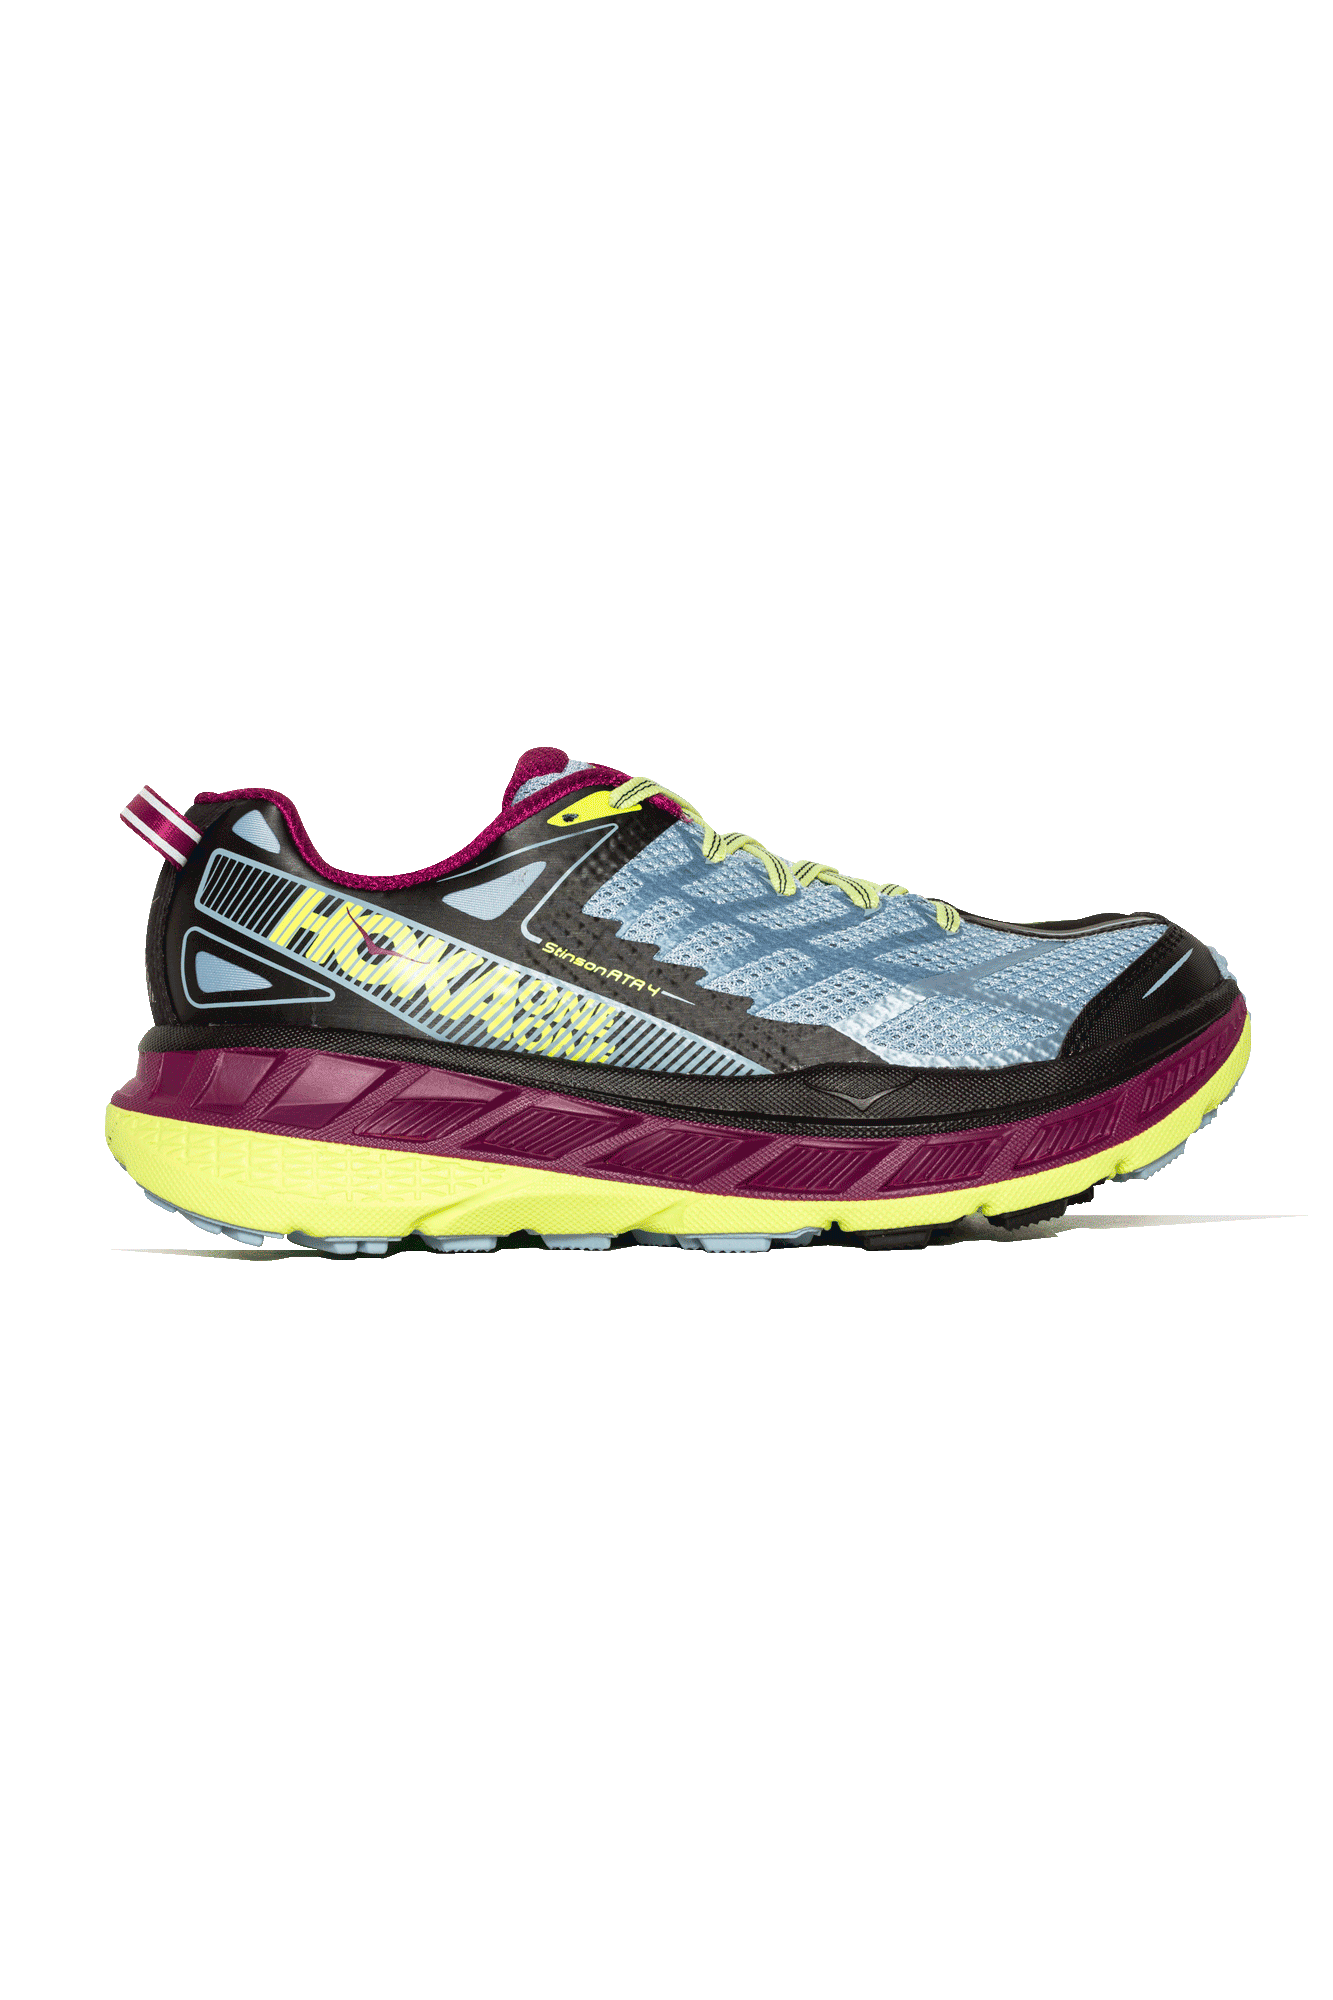 Salomon X Ultra 3 Mid Gtx Ladies Walking Shoes Multicolour